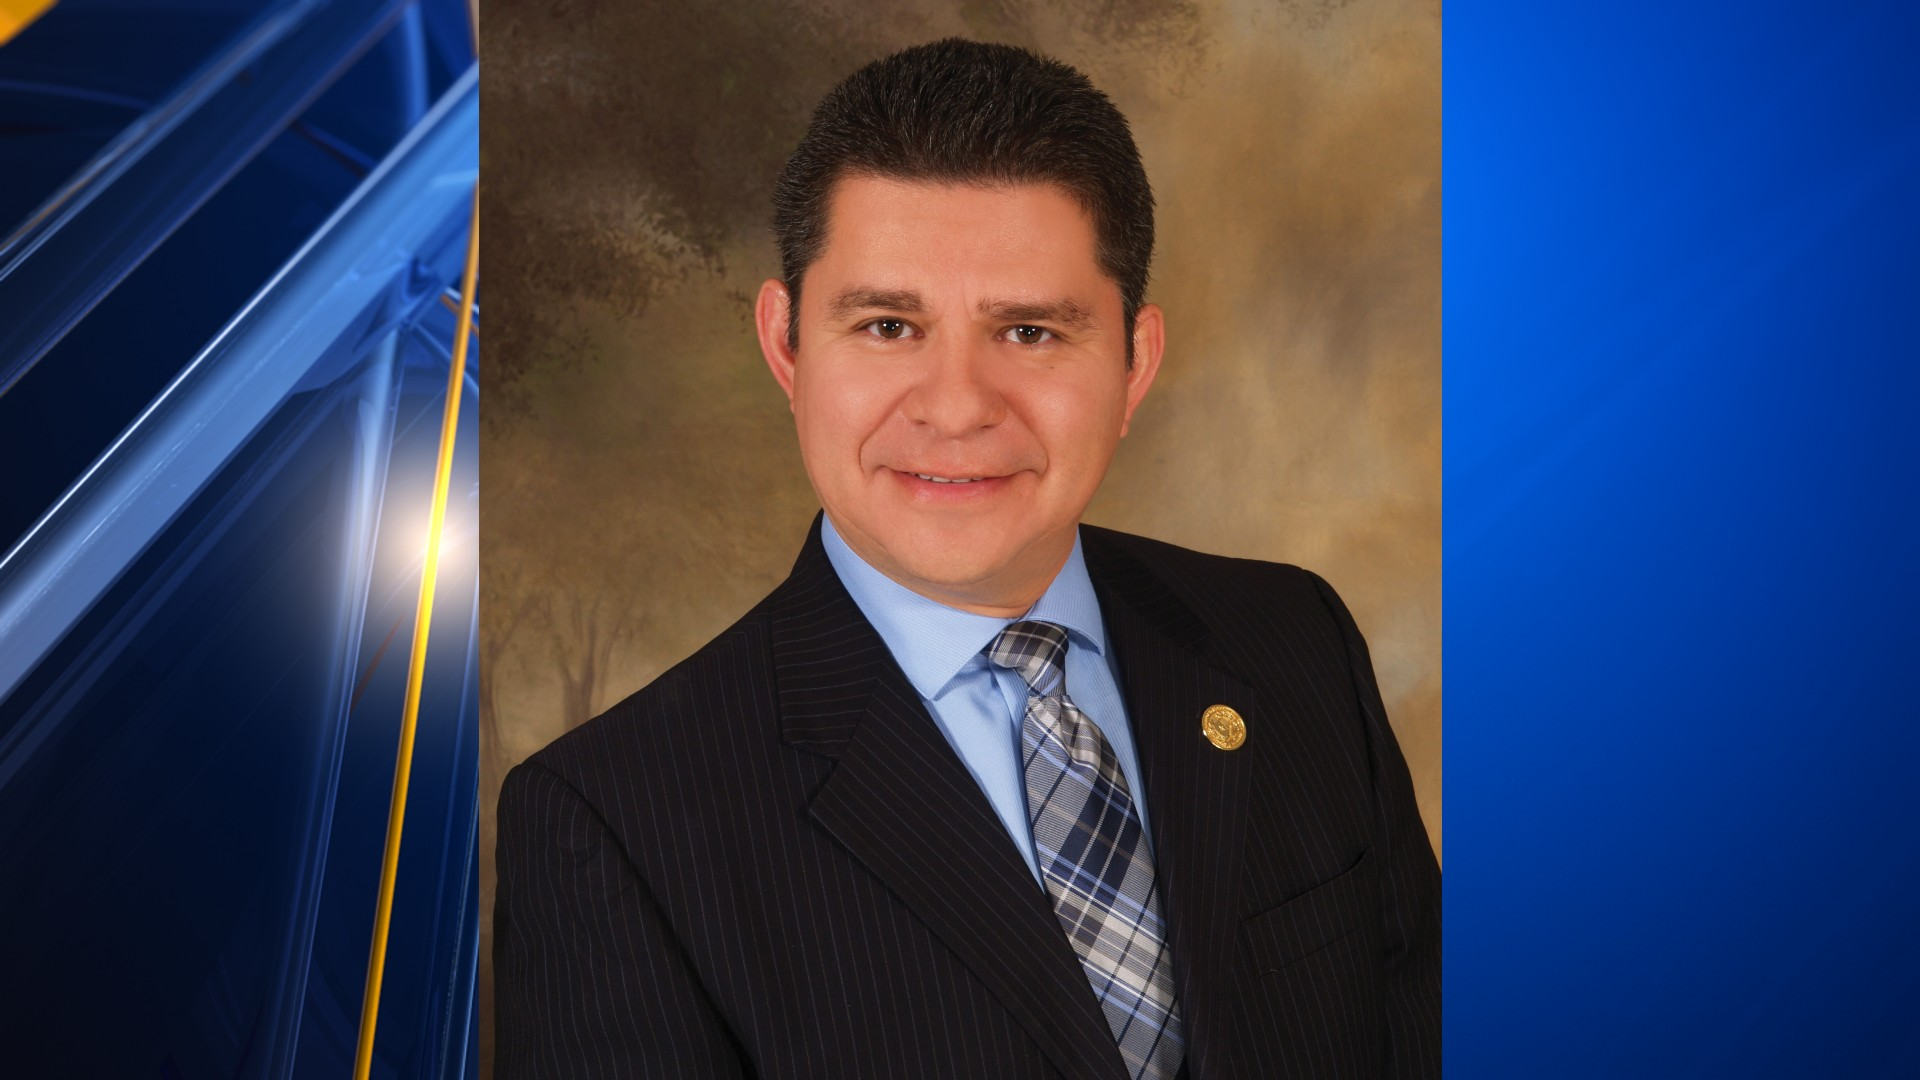 A portrait of Michael Najera a recently appointed SISD trustee